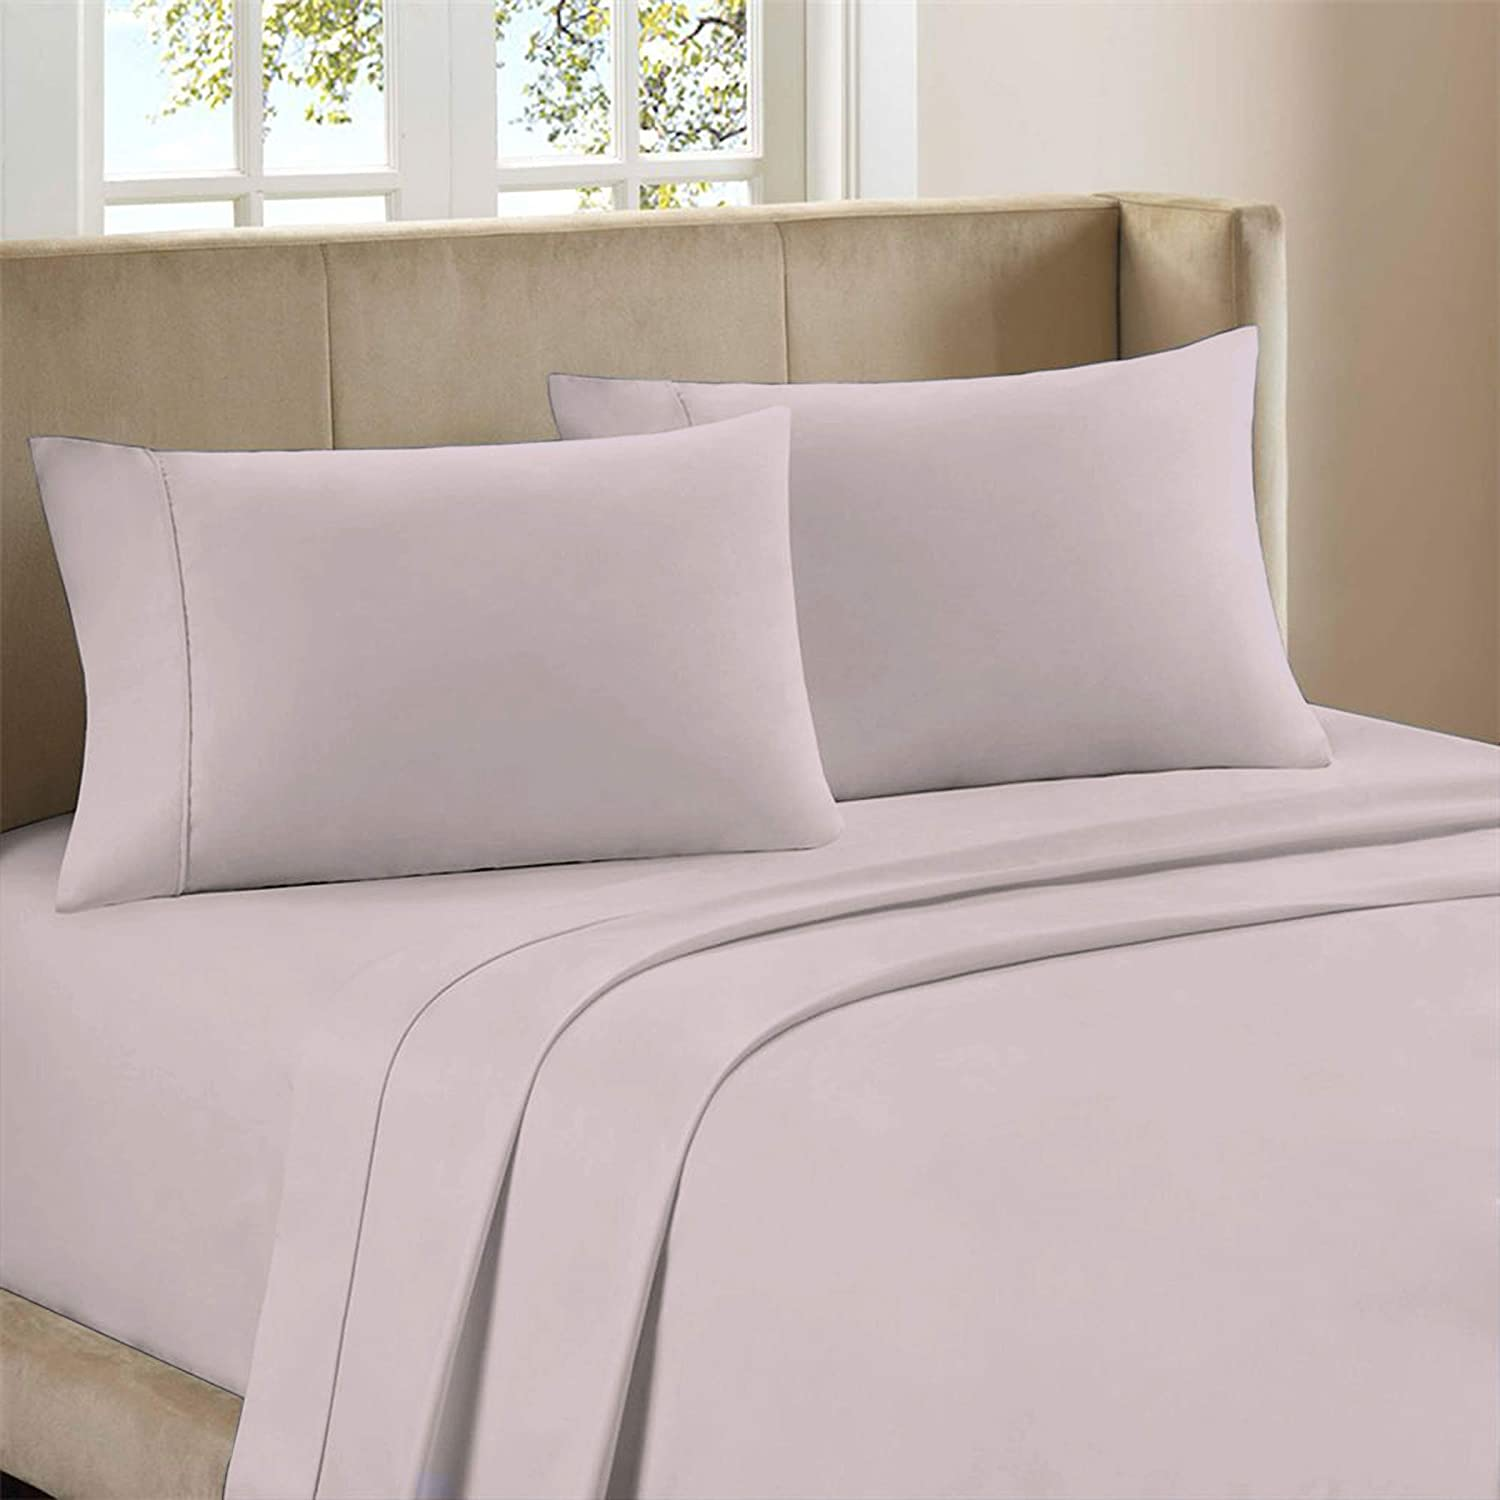 "300-Thread-Count Pure Organic Cotton Percale Sheet Set, Luxury 3 Piece Lavender Twin Size Sheets,Moisture Wicking,Cool Crisp & Breathable,Patented Fitted Sheet Fits Upto 18"" Deep Pocket - Purity Home"